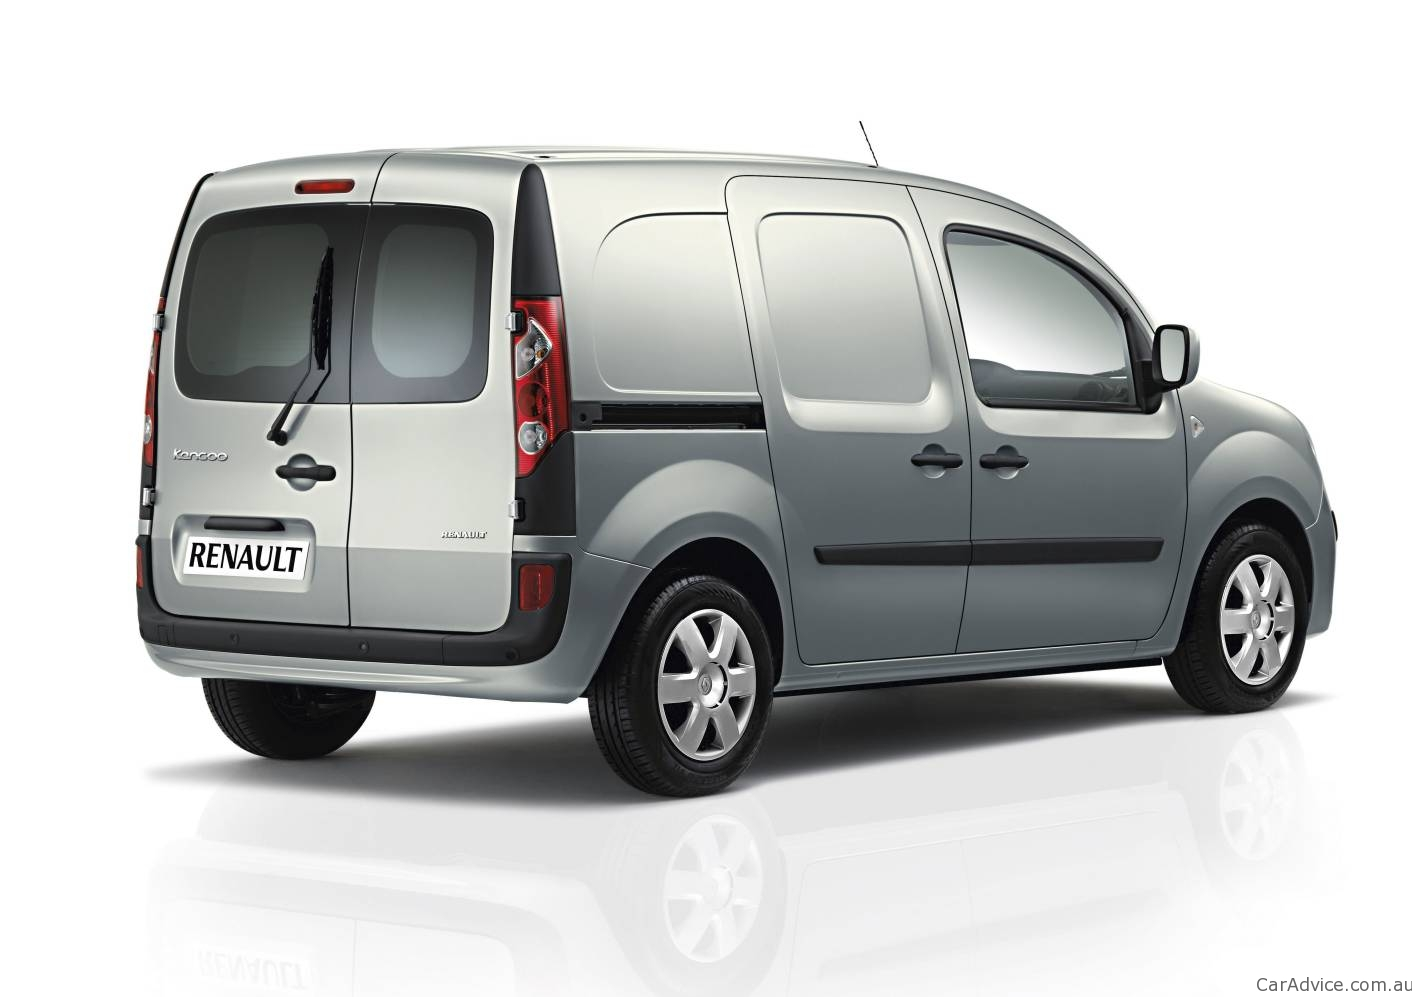 2011 renault kangoo available in australia photos 1 of 3. Black Bedroom Furniture Sets. Home Design Ideas